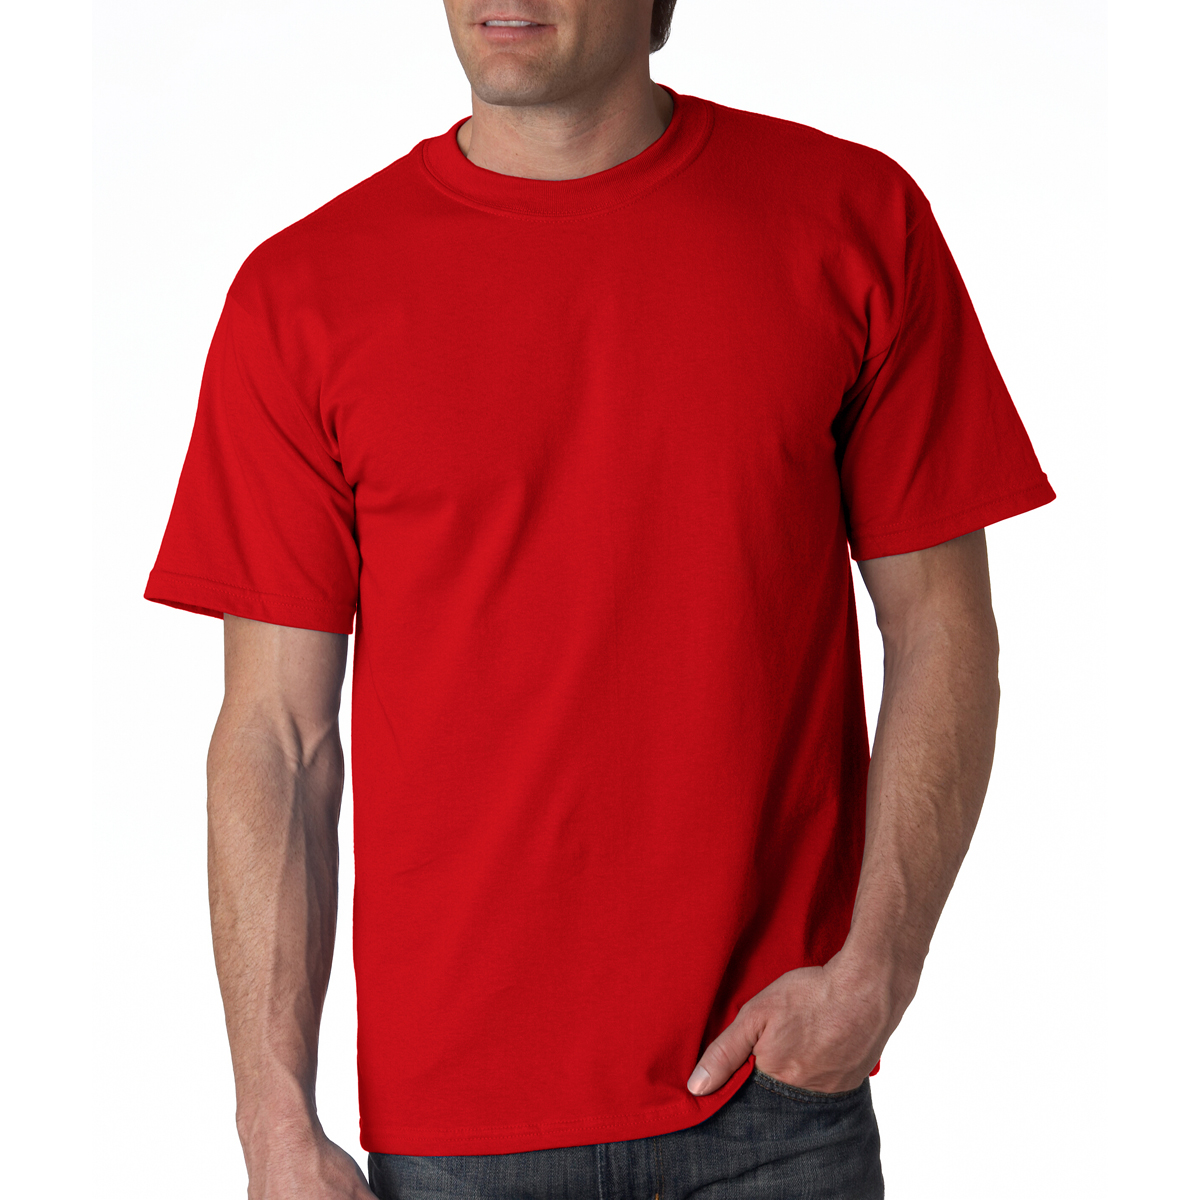 Gildan 2000 ultra cotton t shirt for Gildan t shirts online